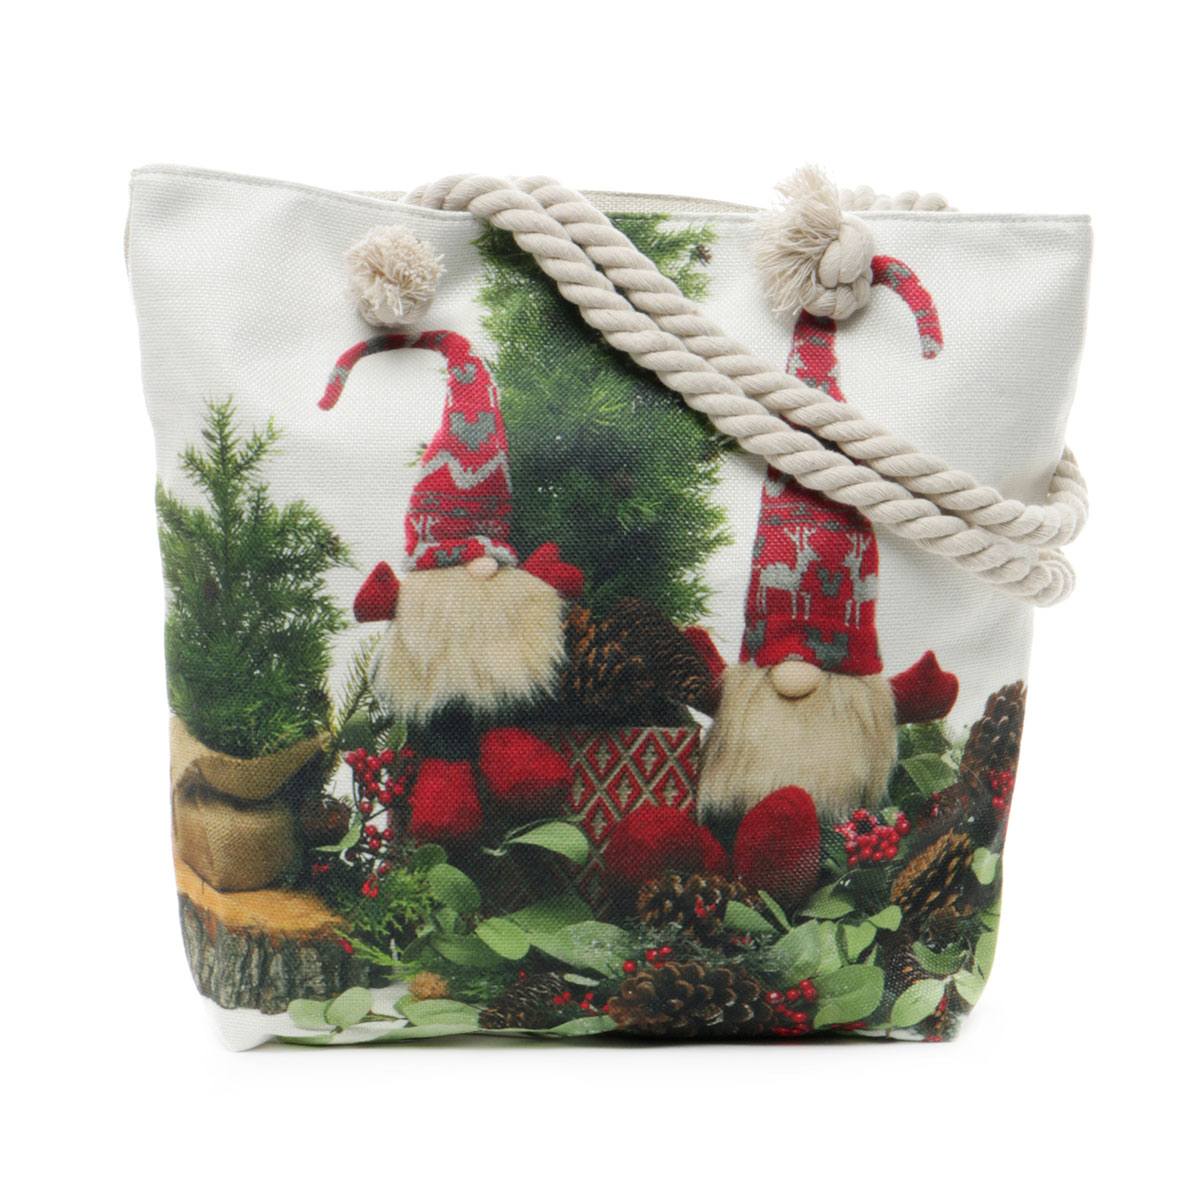 Reindeer Games Tapestry Bag with Adjustable Should Strap, Lining